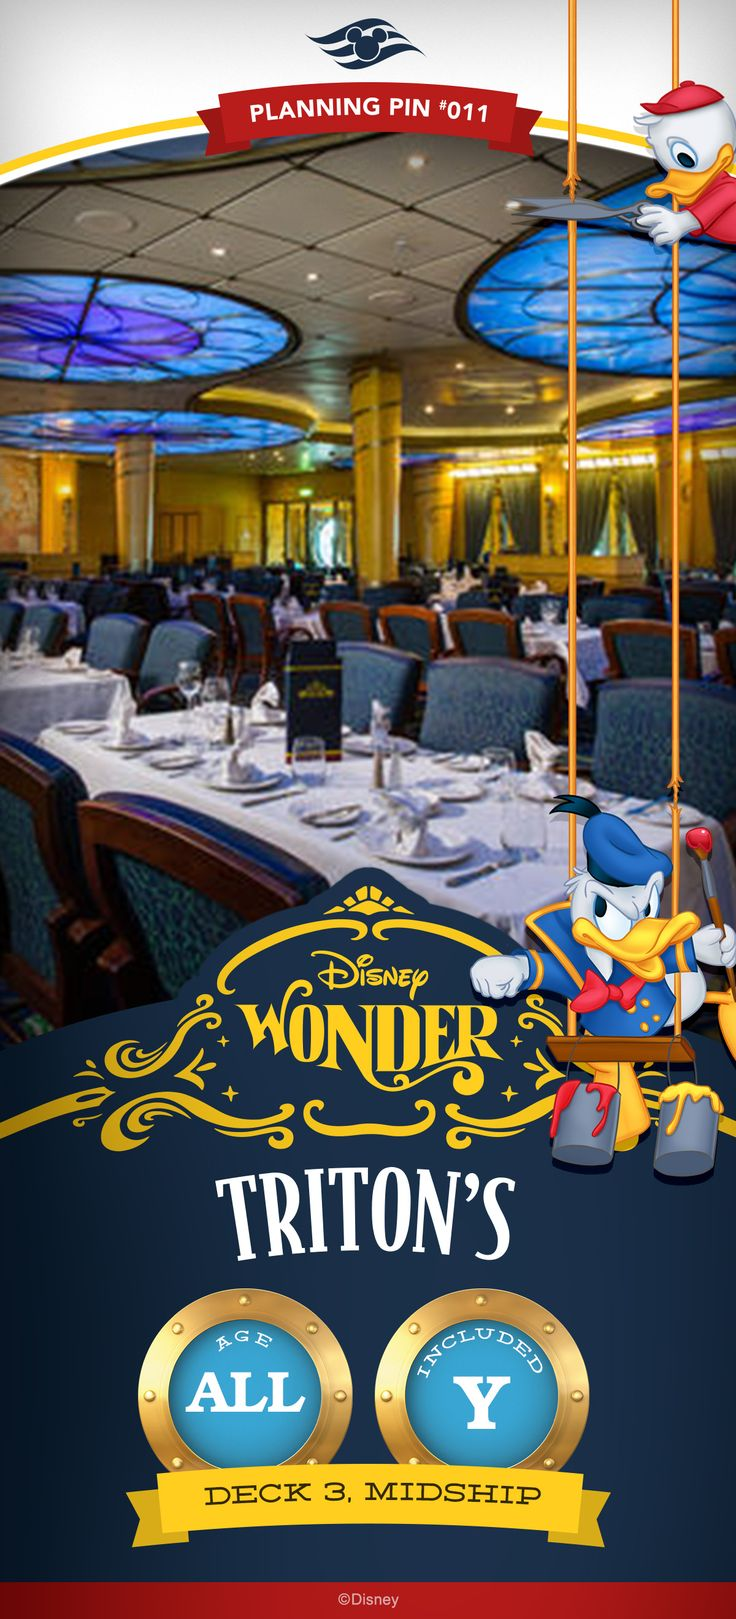 """Named after the Little Mermaid's father, Triton's is an upscale restaurant offering fine dining """"under the sea."""" avor classic American cooking for breakfast and lunch and continental cuisine with a French flair for dinner. Click to learn more about this Disney Cruise Line restaurant"""